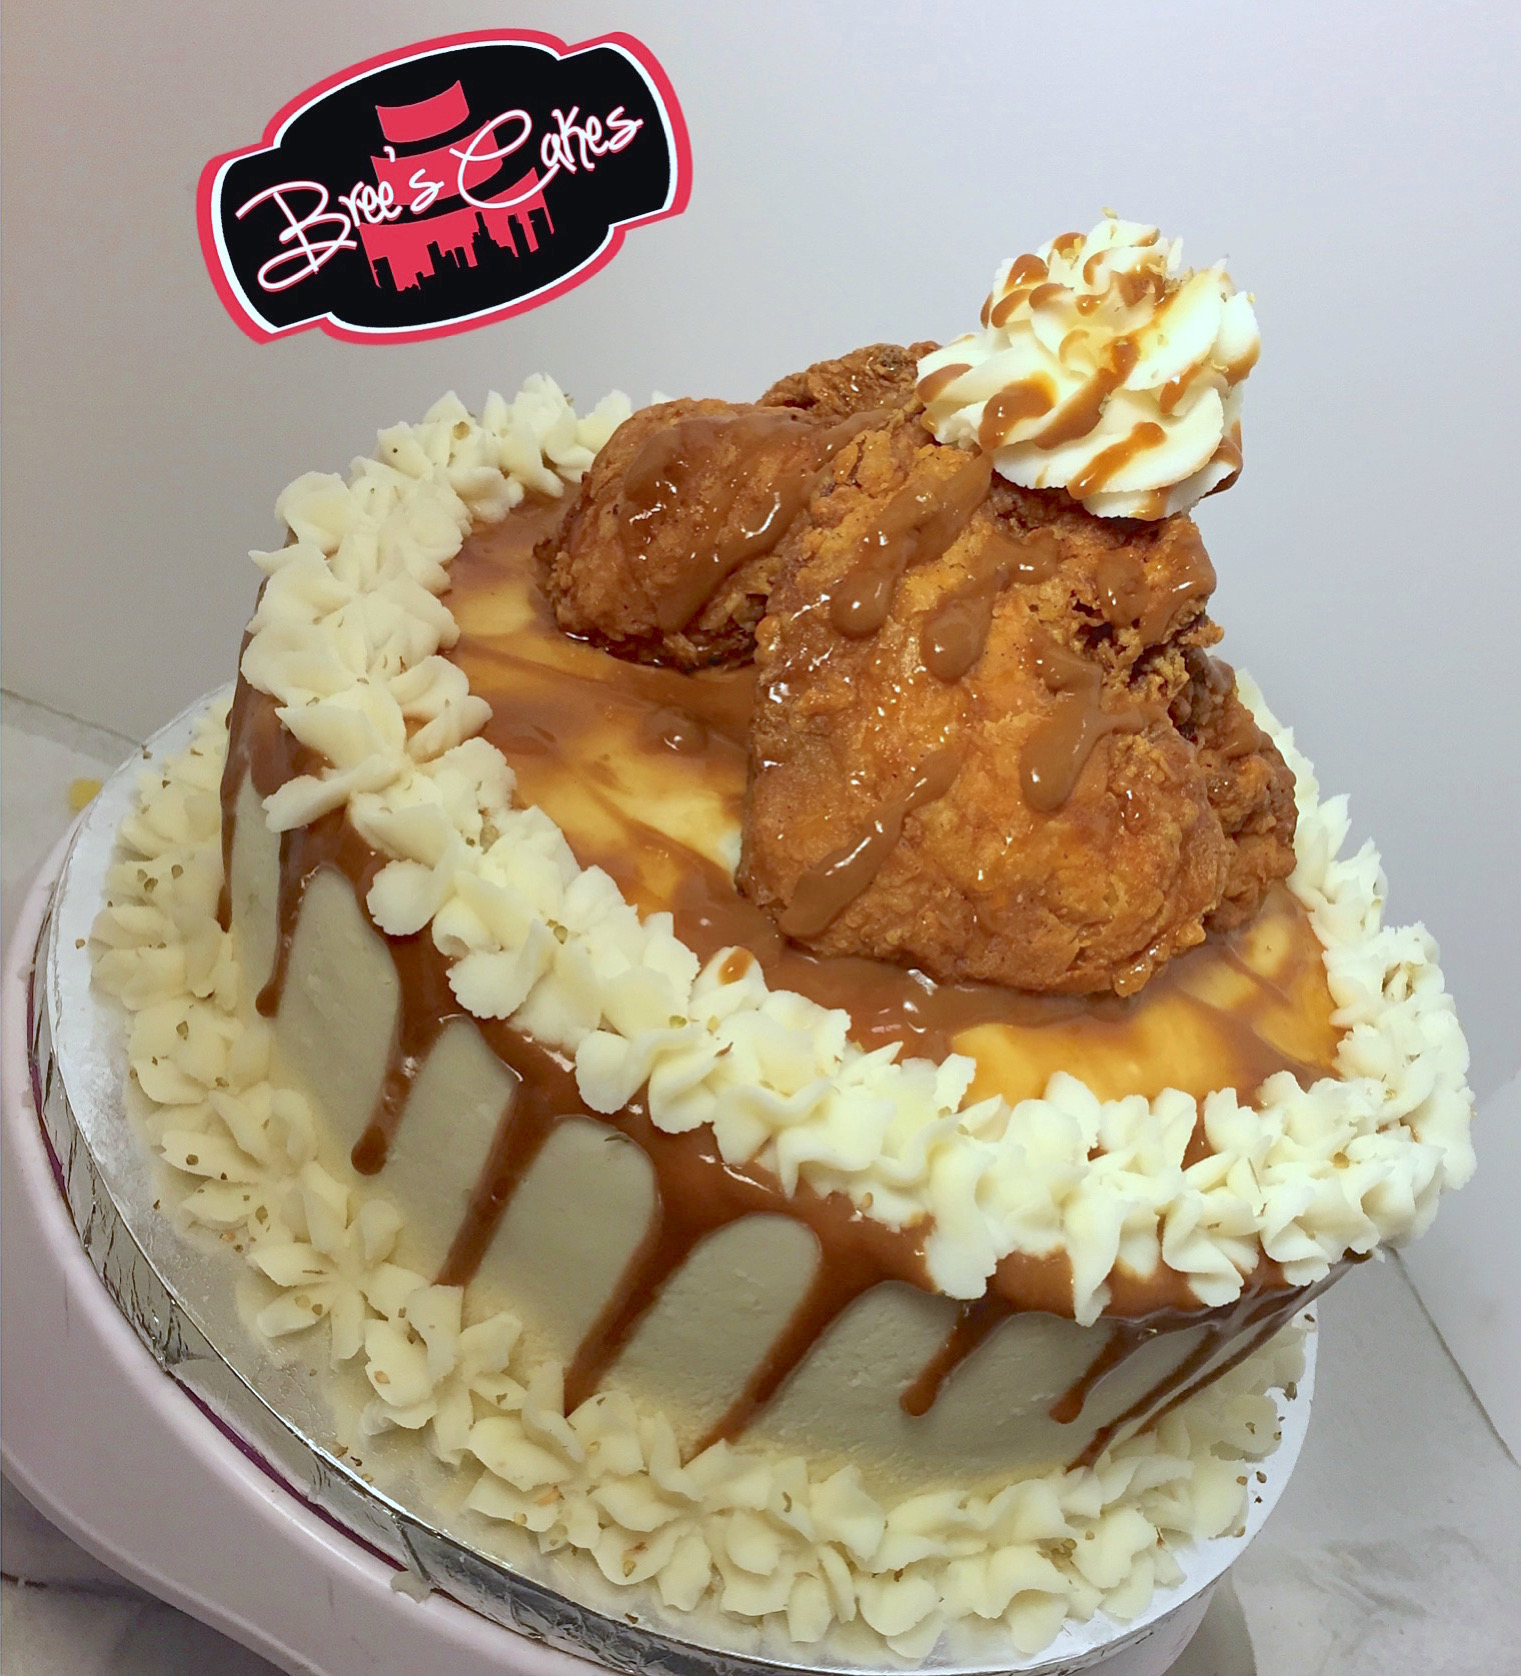 Fabulous This Fried Chicken Mashed Potato Cake Is A Dinner Dream Come True Personalised Birthday Cards Veneteletsinfo